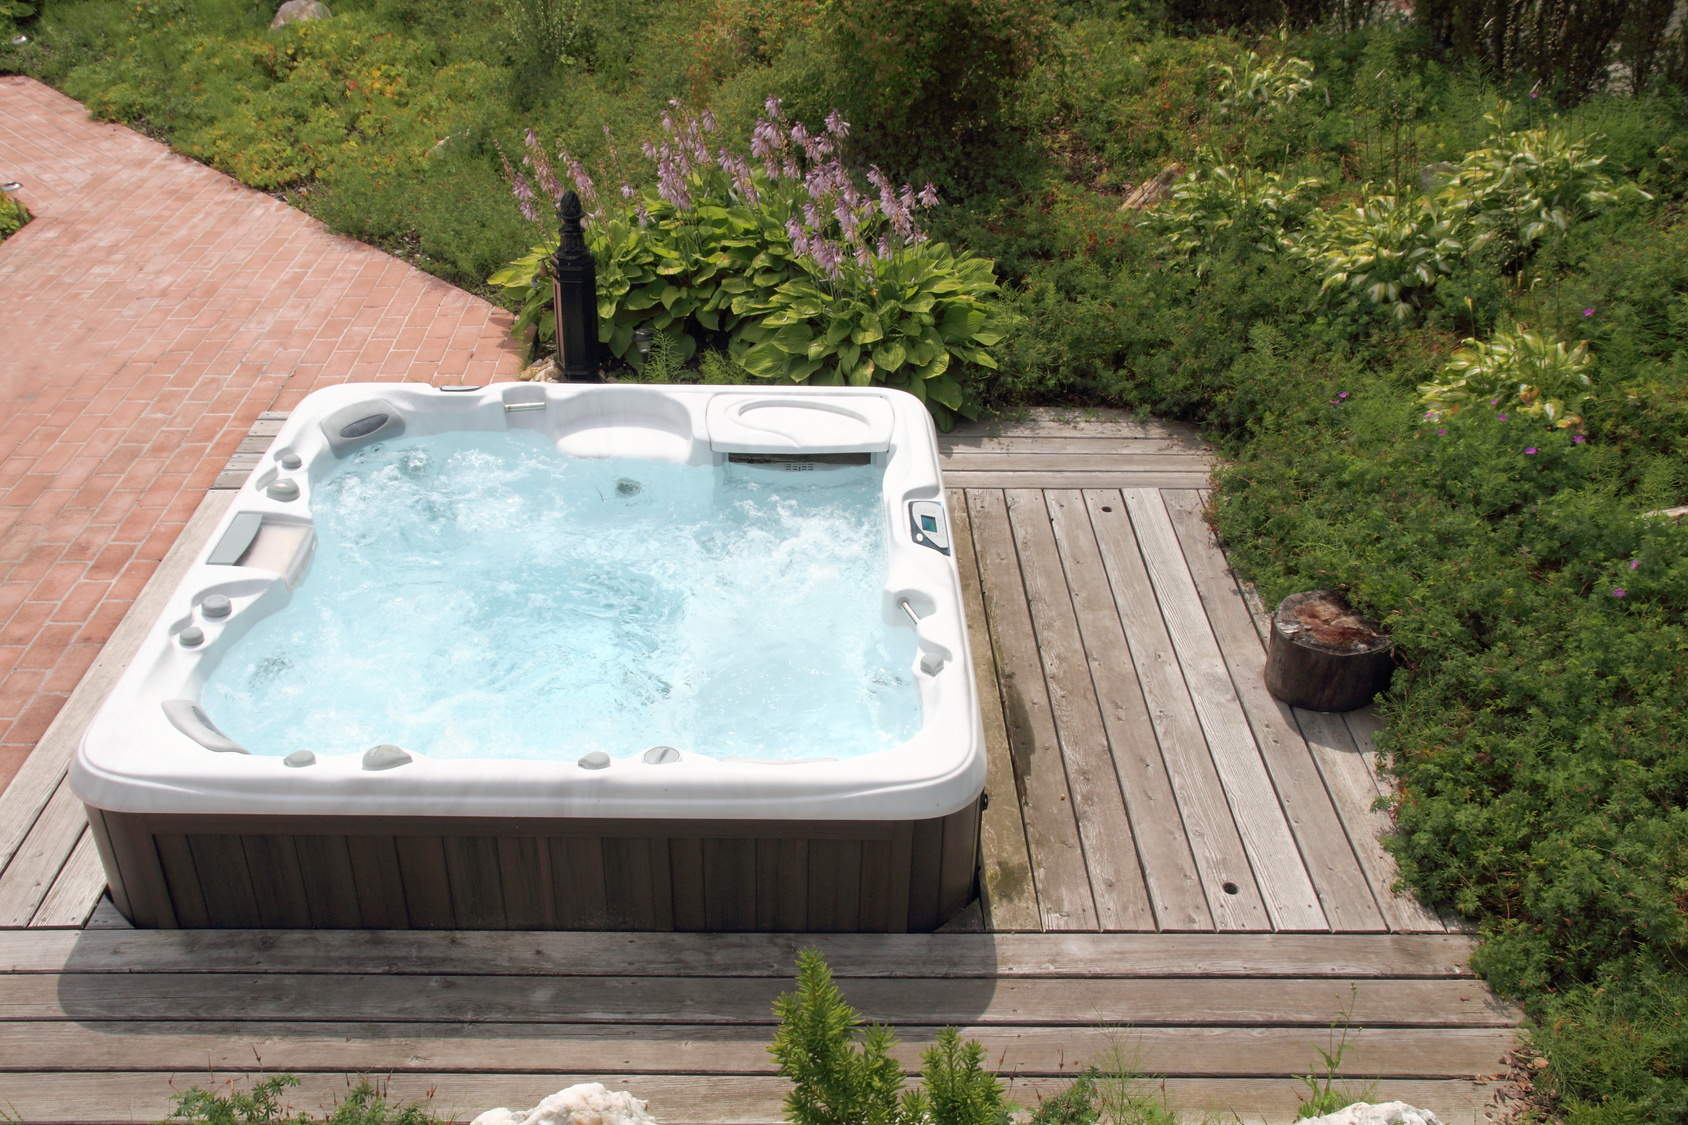 Le tarif d 39 un spa balneo ext rieur co t et devis for Prix d un jacuzzi interieur